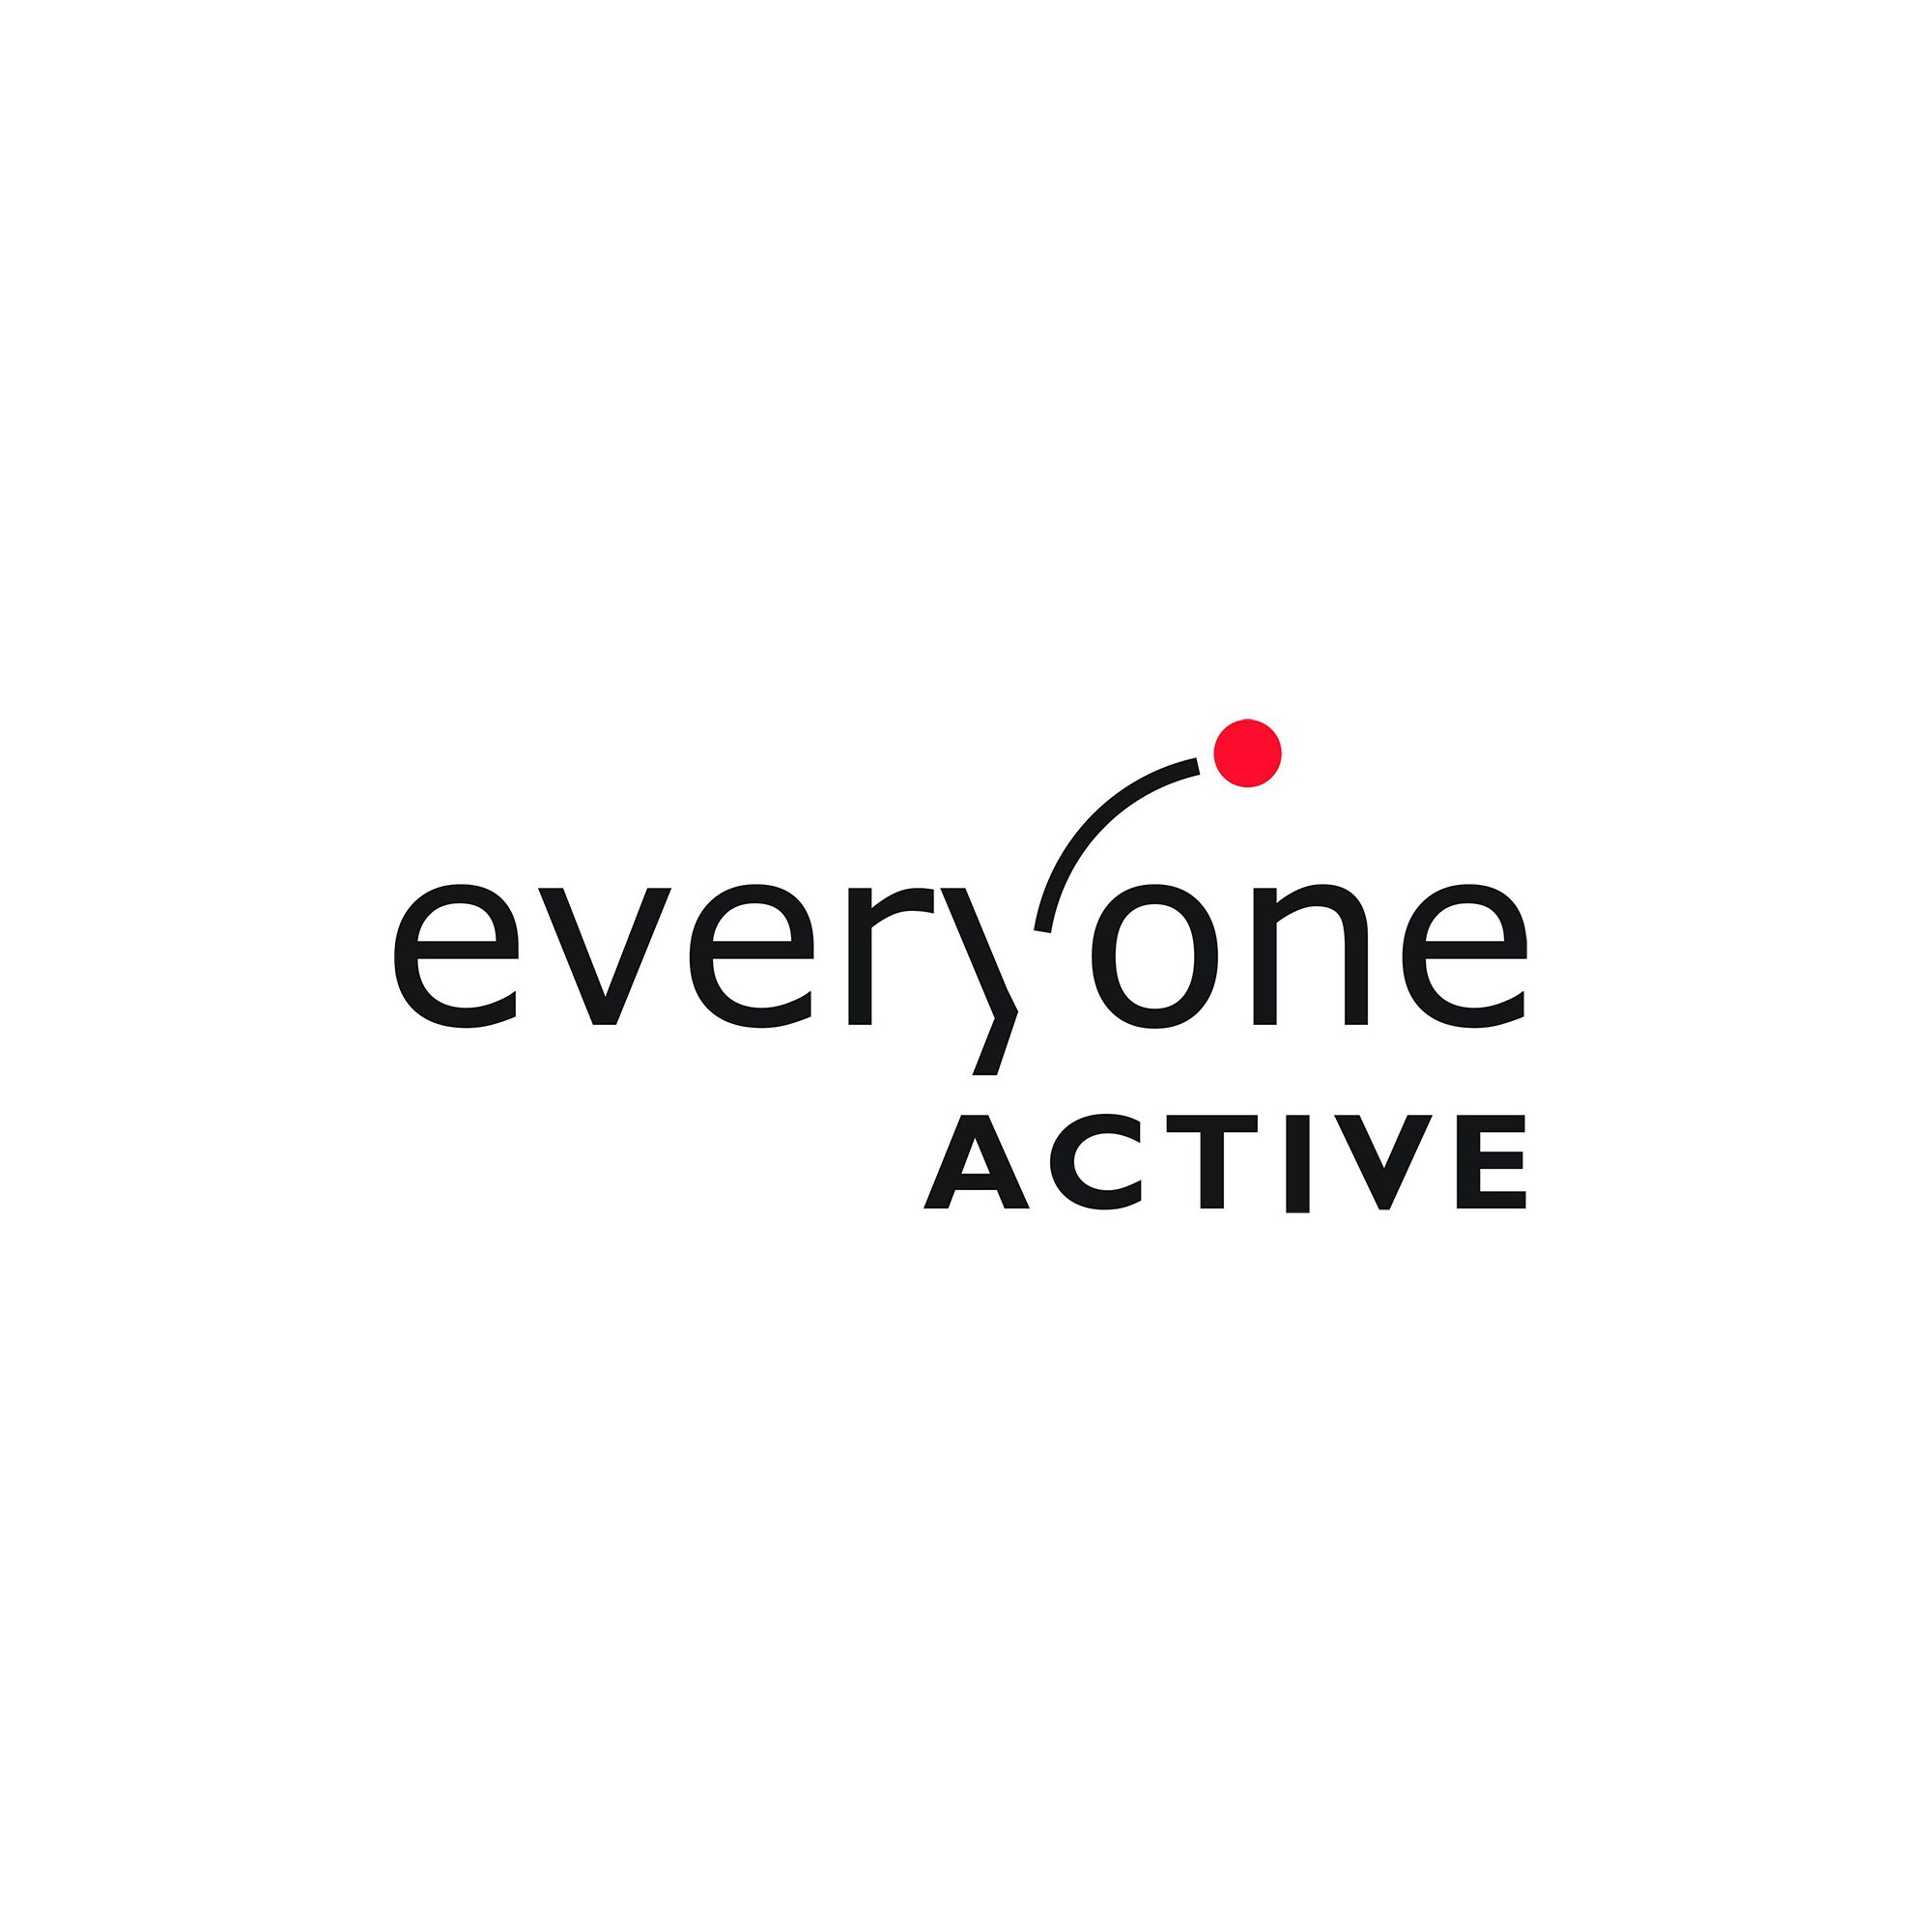 Everyone Active